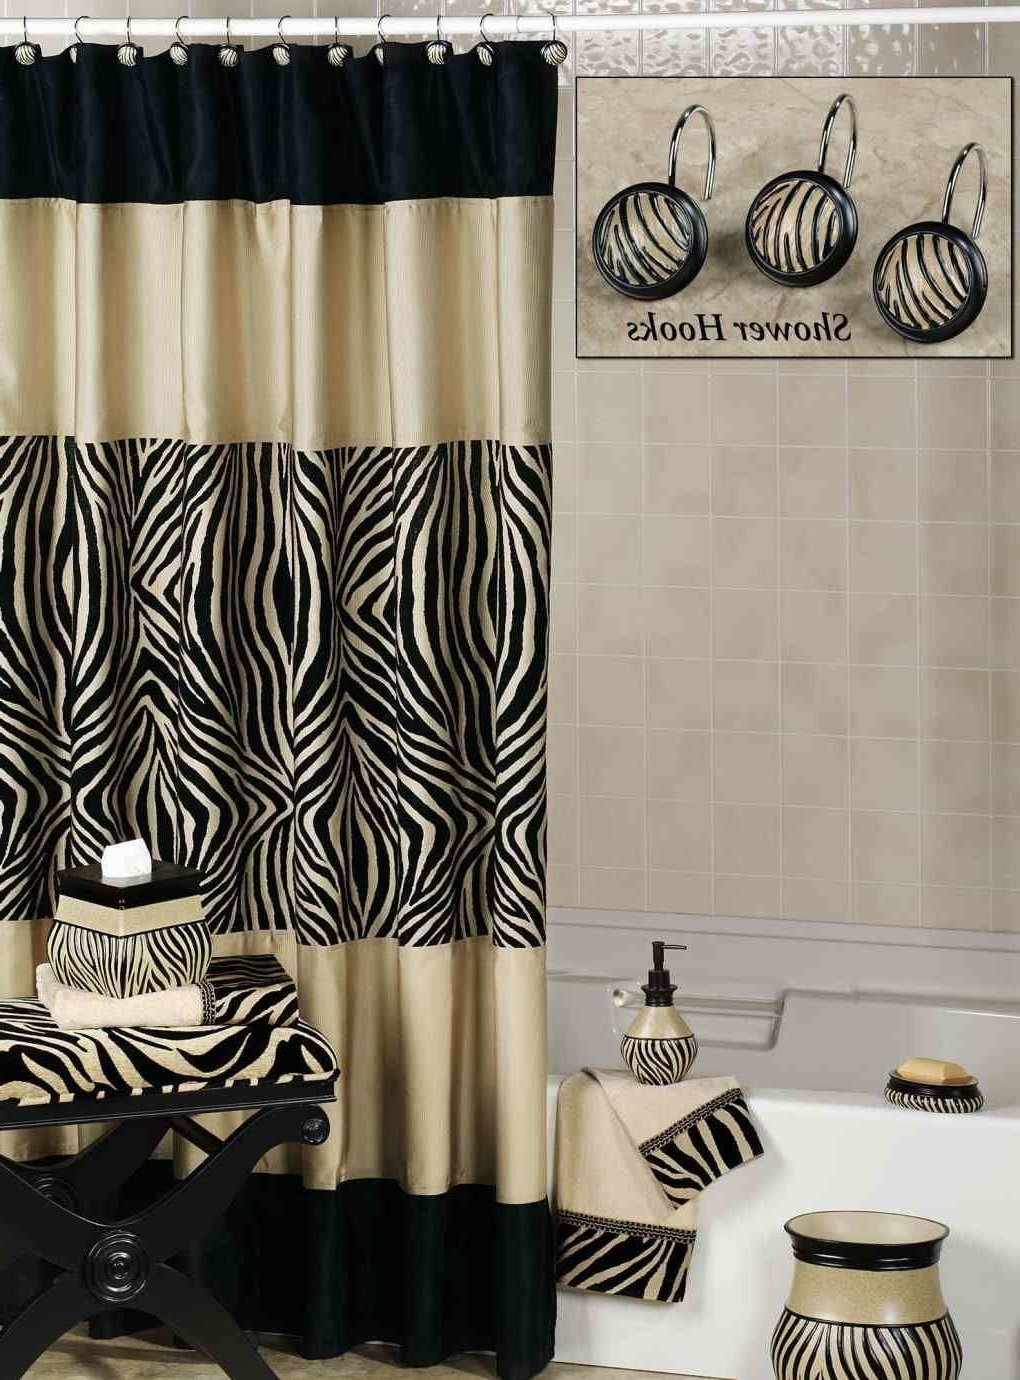 Only Furniture: Zebra Bathroom Themes For Curtain And 30+ Zebra Bathroom Decorating Ideas